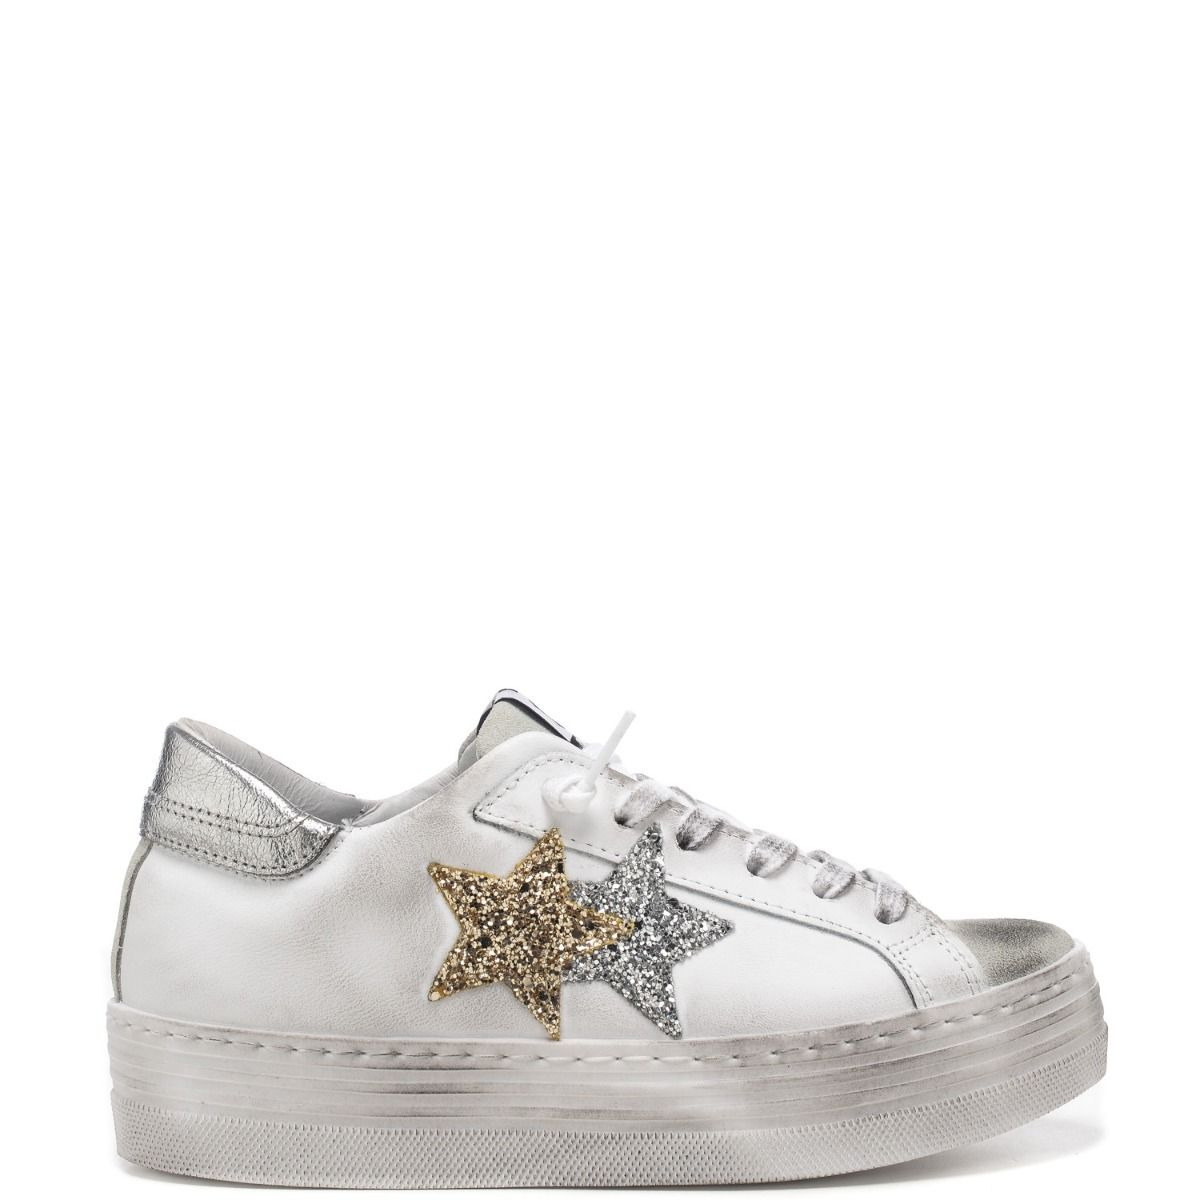 2 Star sneakers 2sd2854